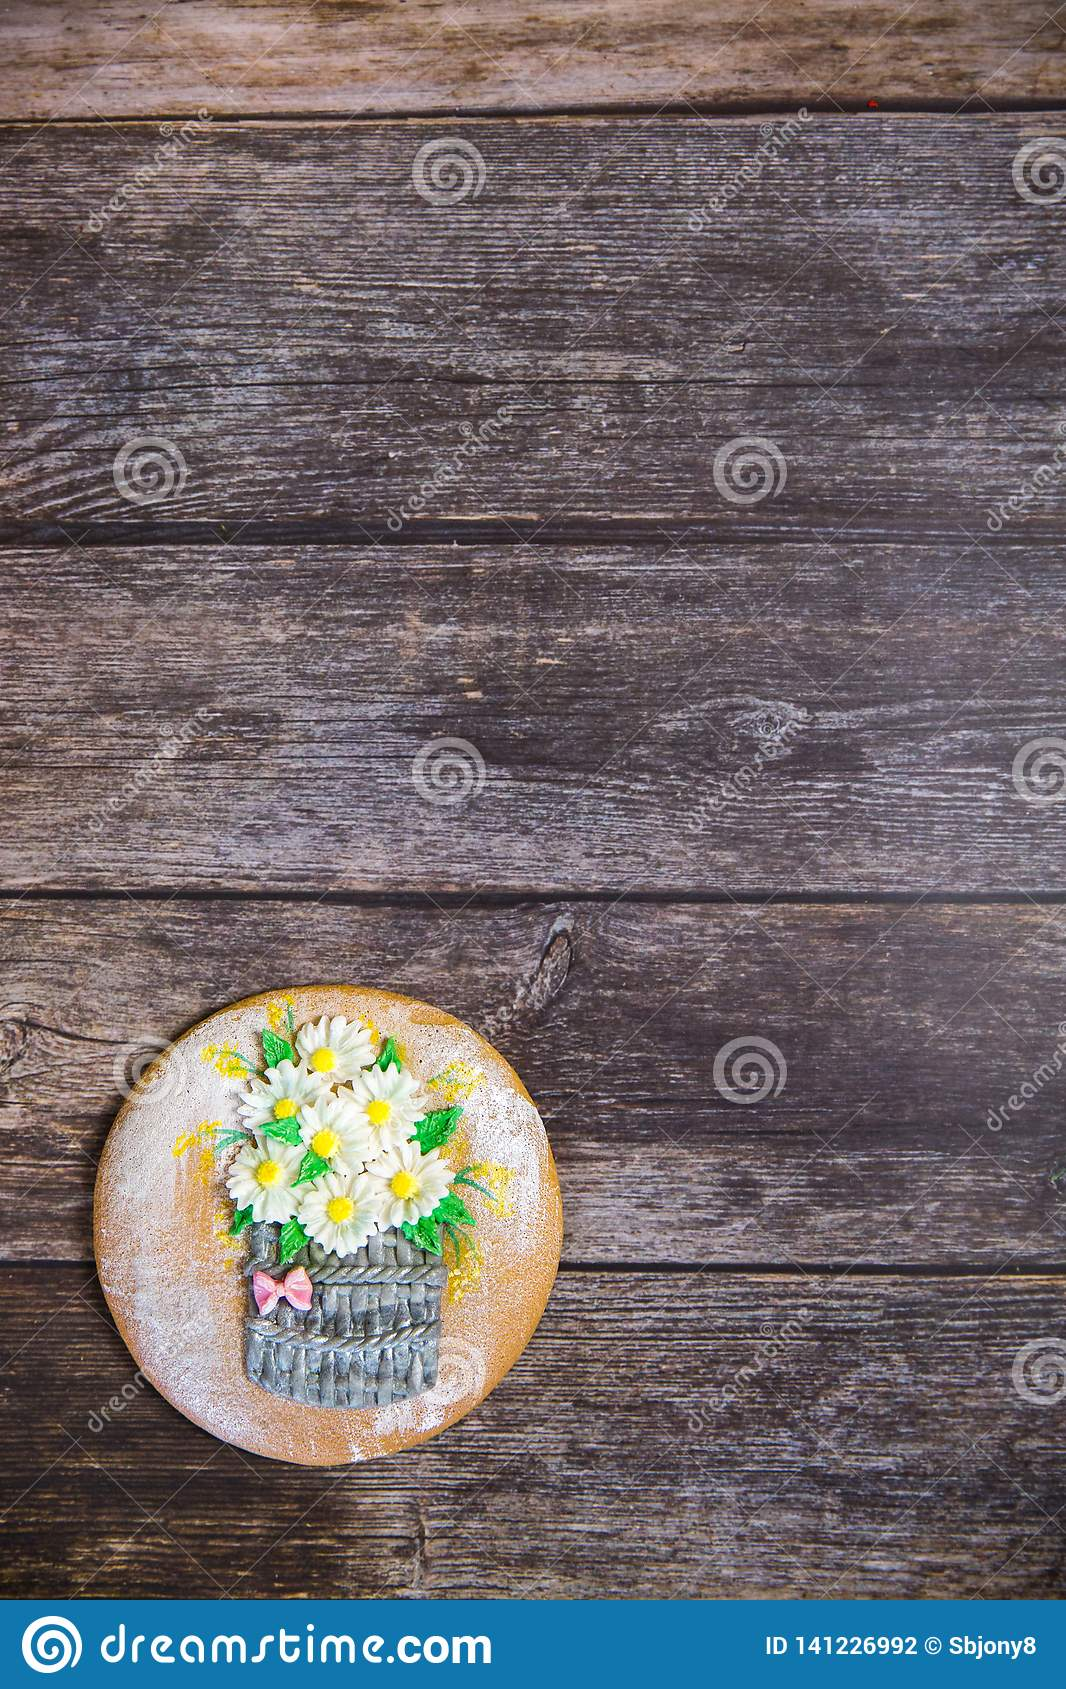 Round handpainted gingerbread on wooden background. Bouquet of daisies in a basket. Flat lay. Copy space. Sweet dessert as a gift